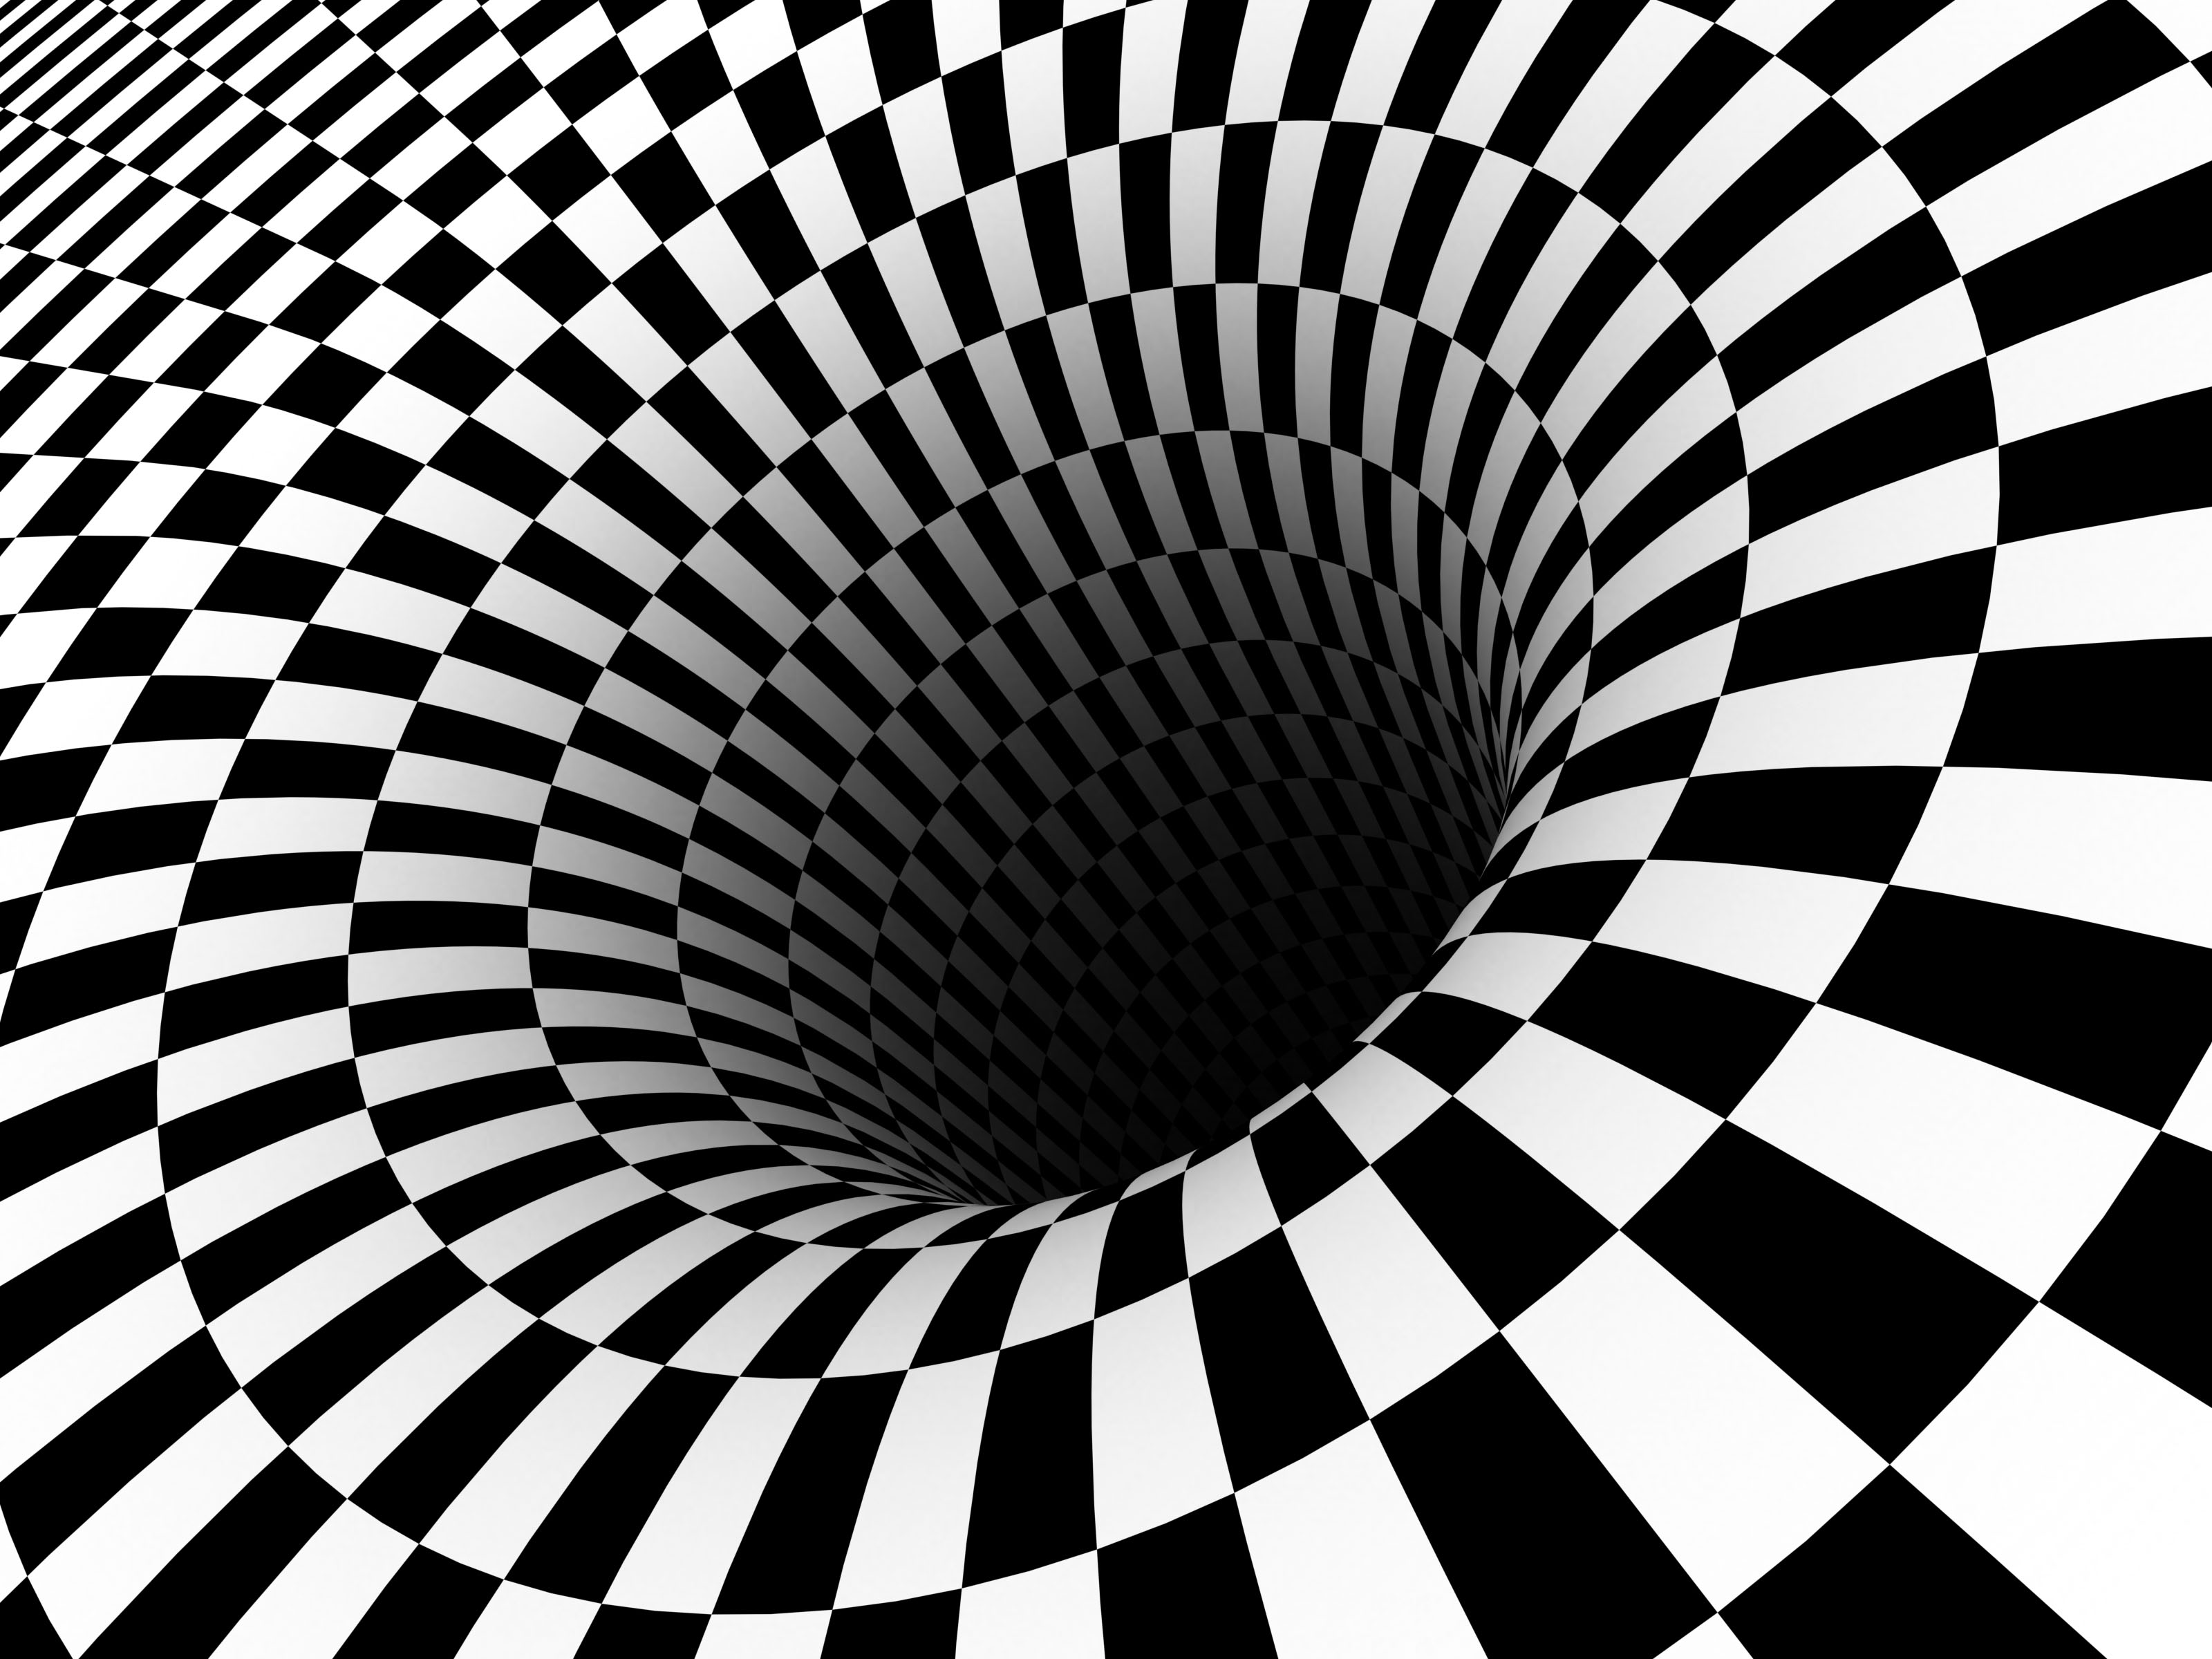 black Hole Checkered Vortex Optical Illusions Wallpapers HD 3200x2400